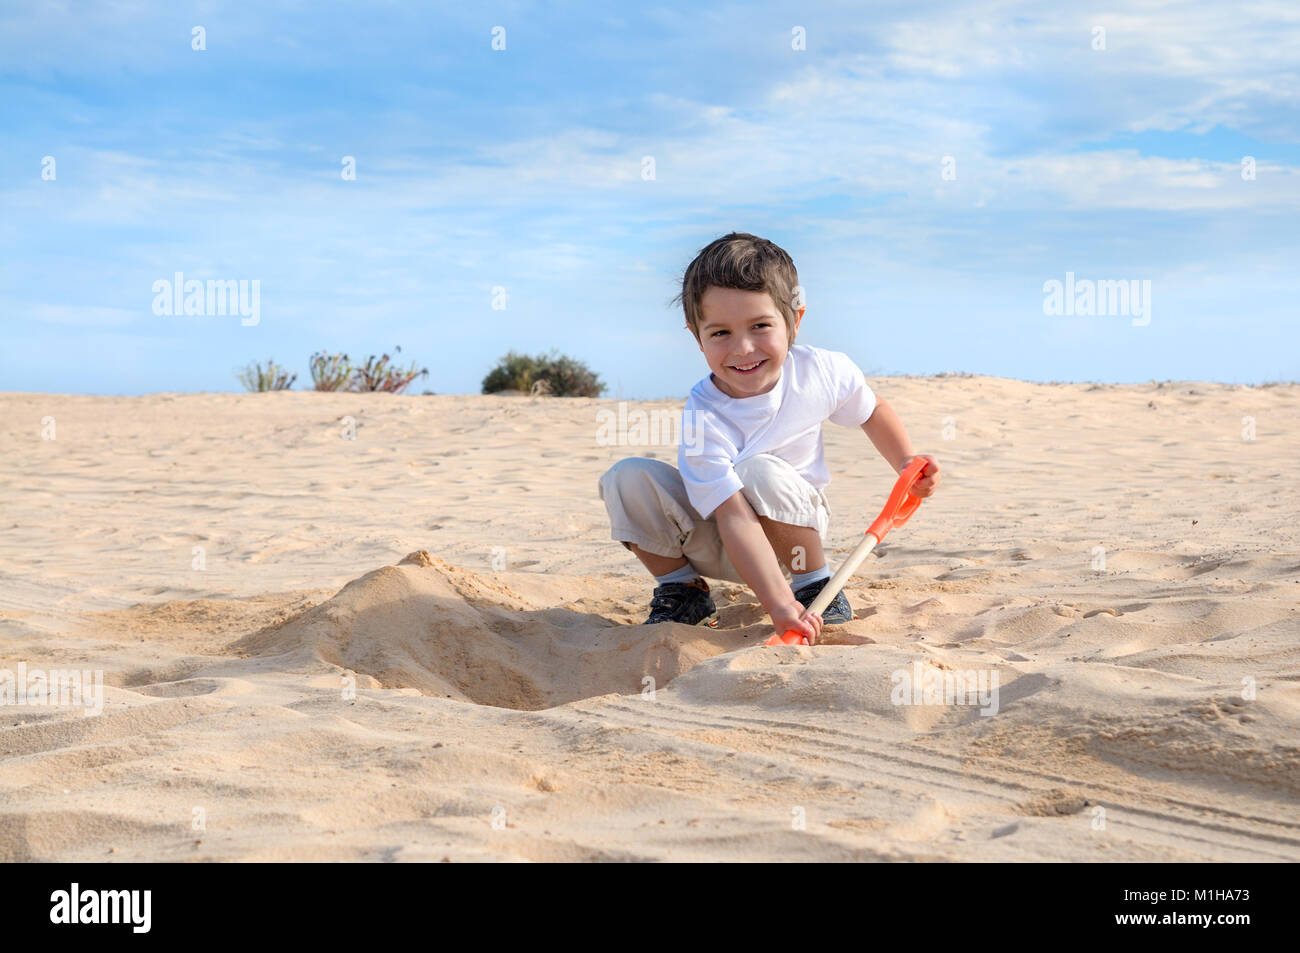 f7ce55c7c Smiling little boy in white t-shirt digs sand on a beach with orange showel